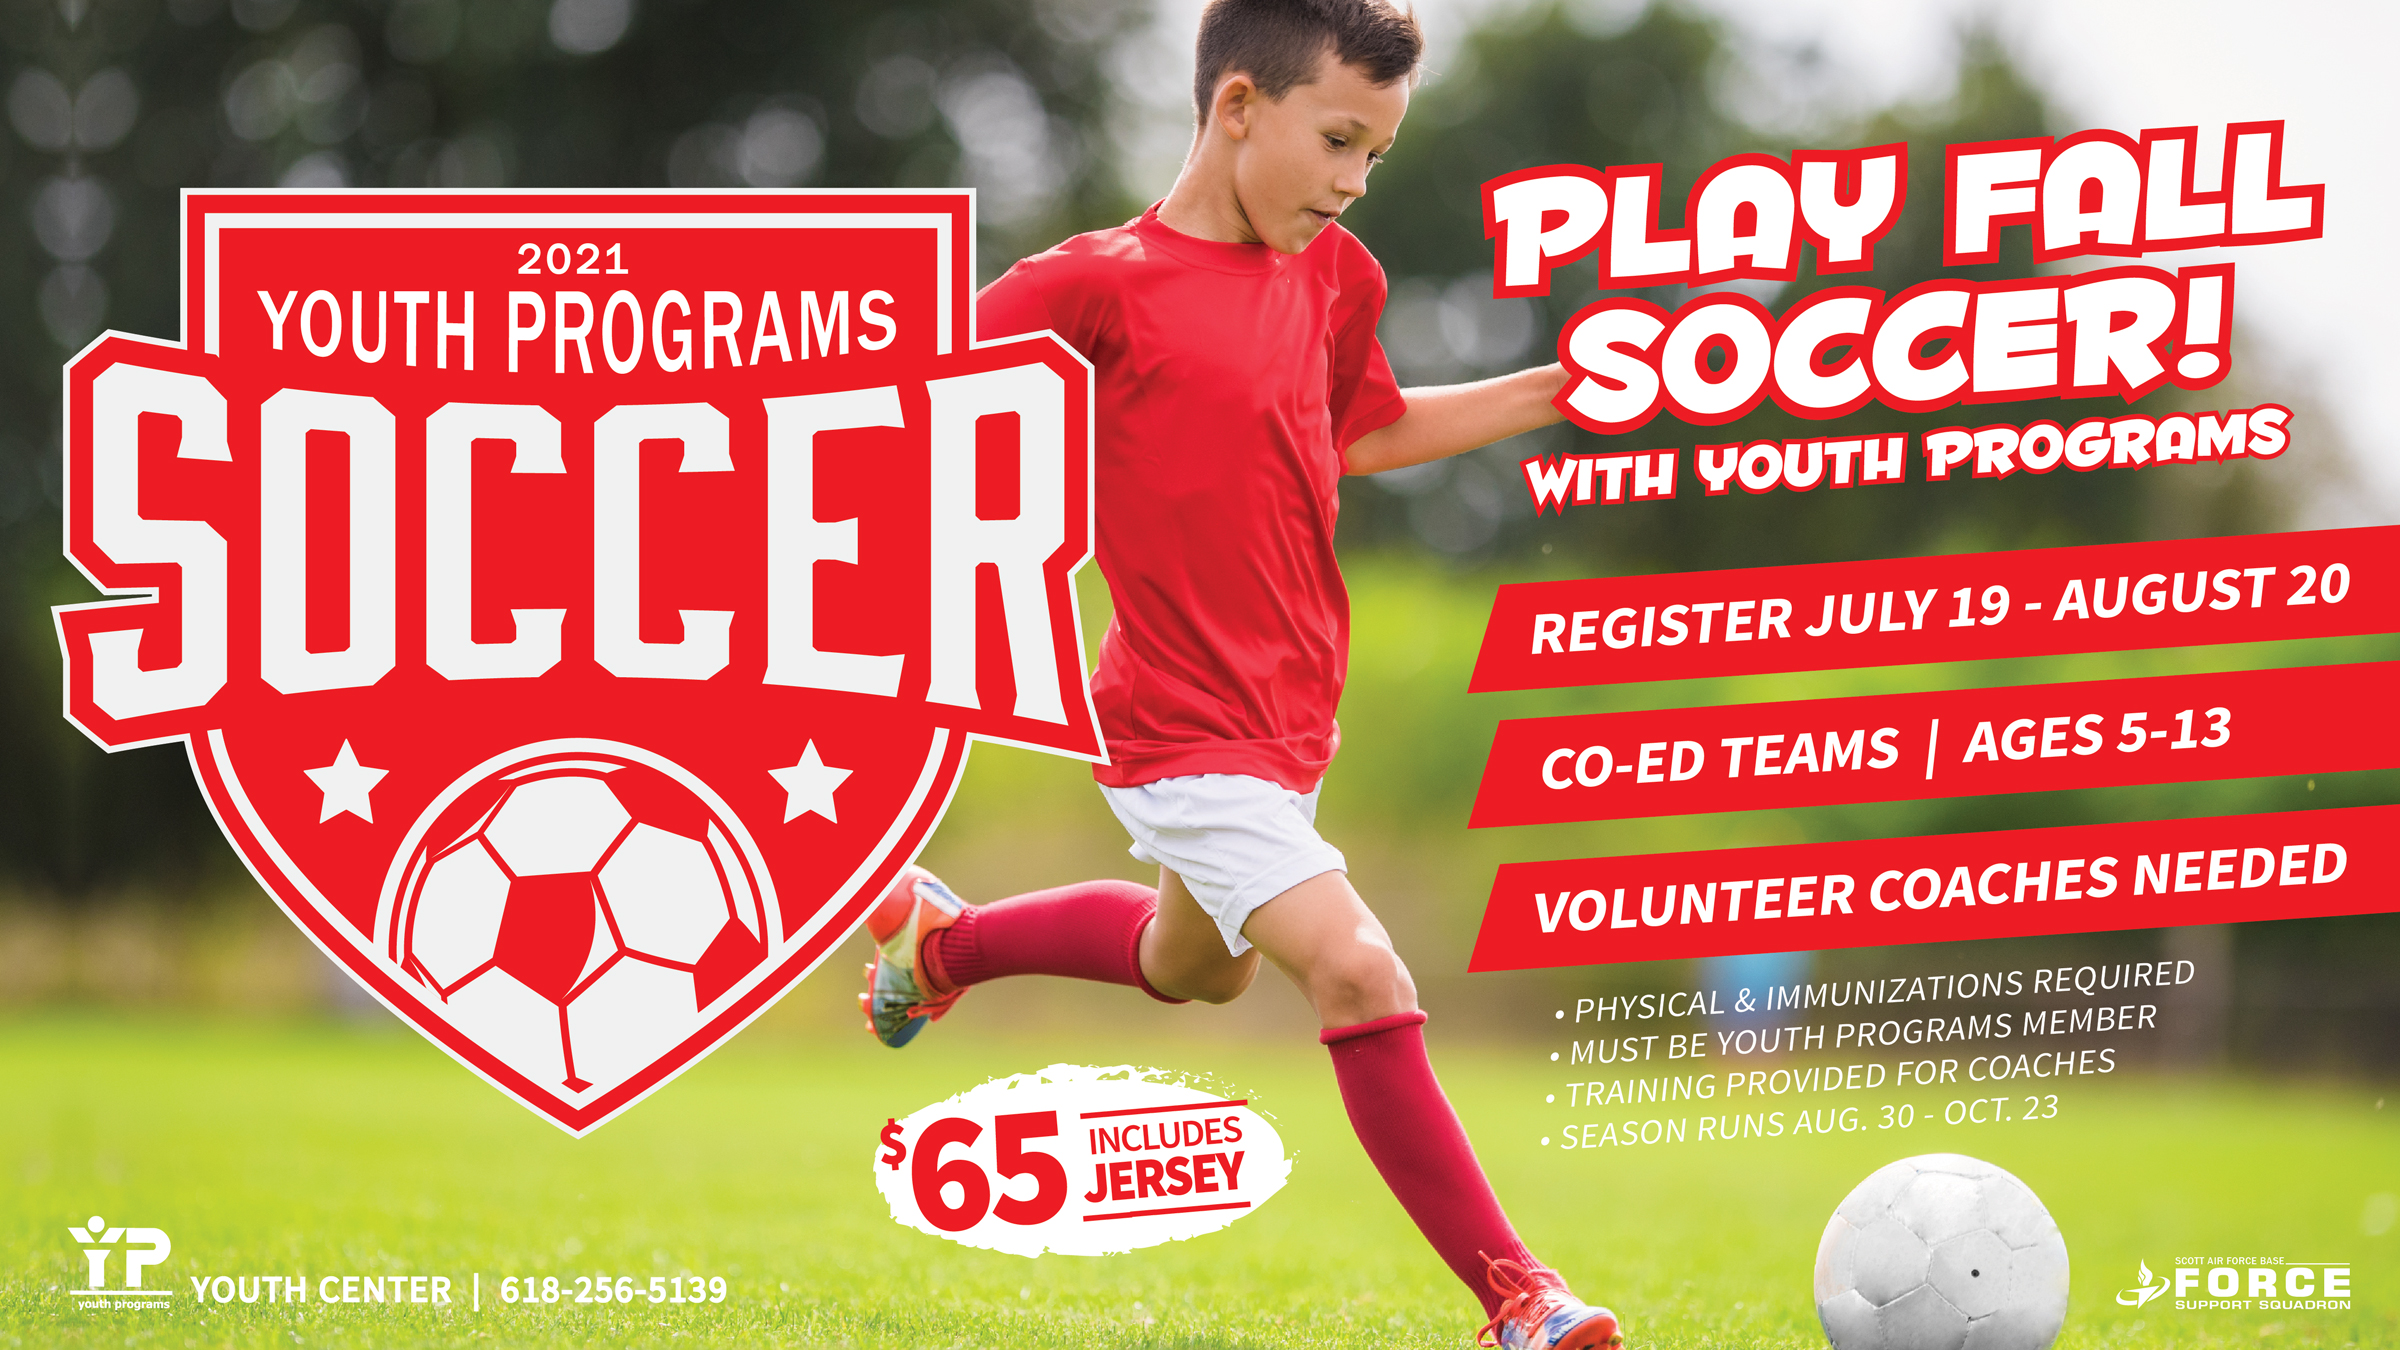 Youth Spring Soccer League